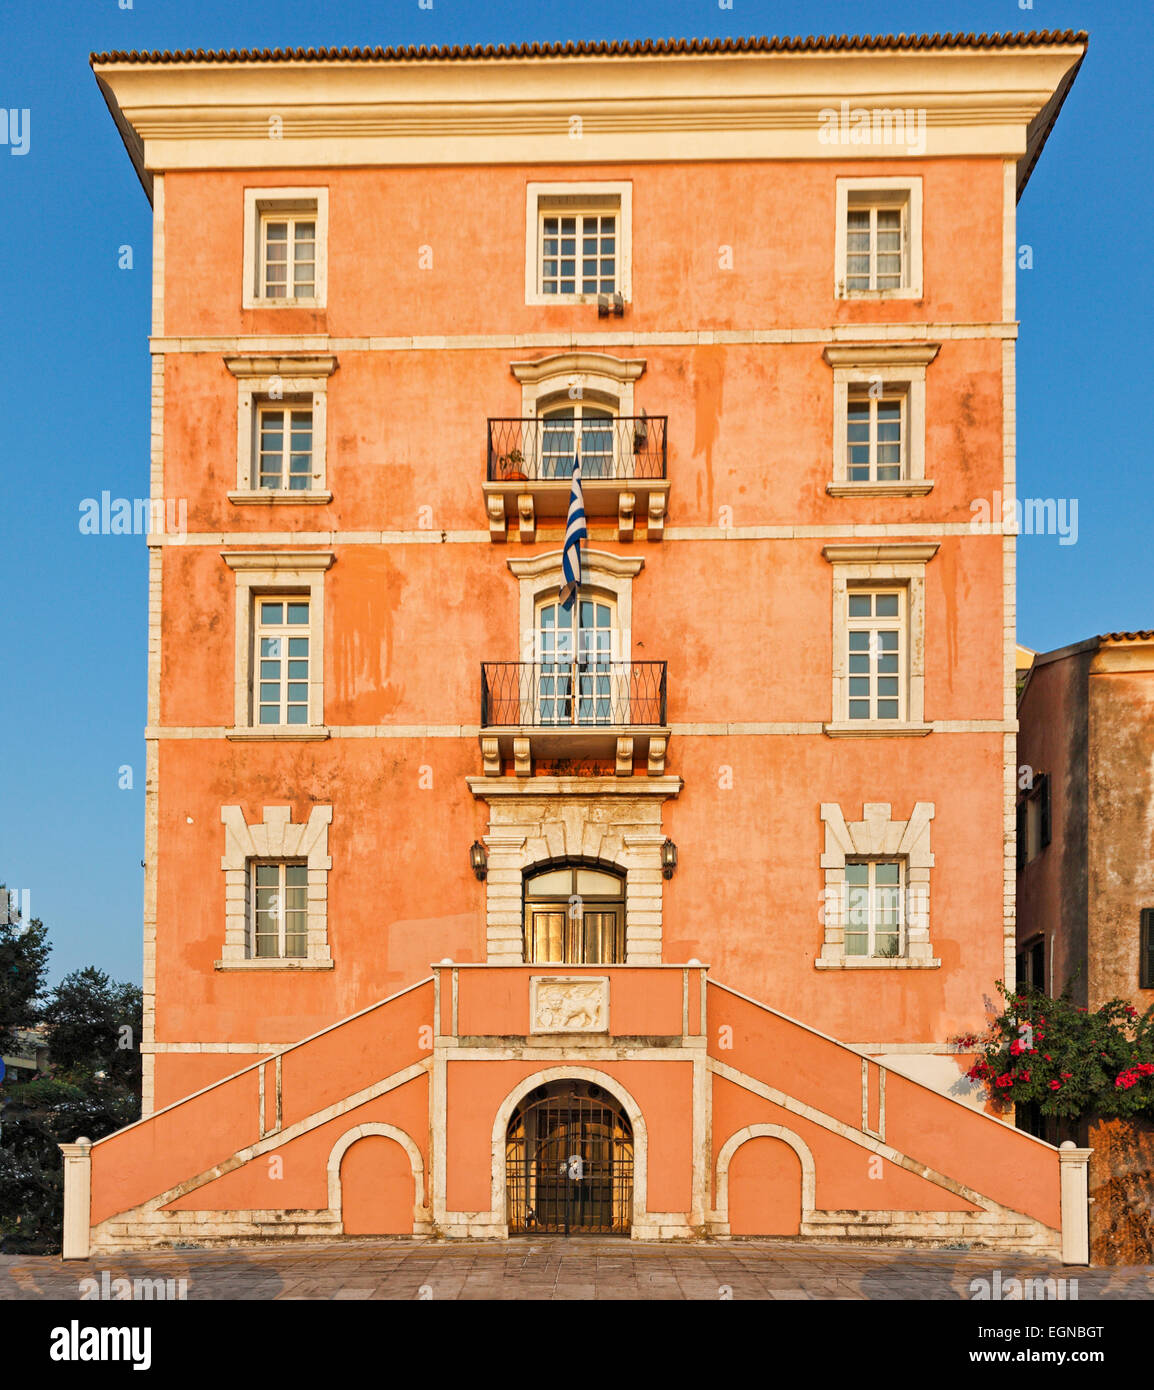 A building at the old town of Corfu, Greece - Stock Image